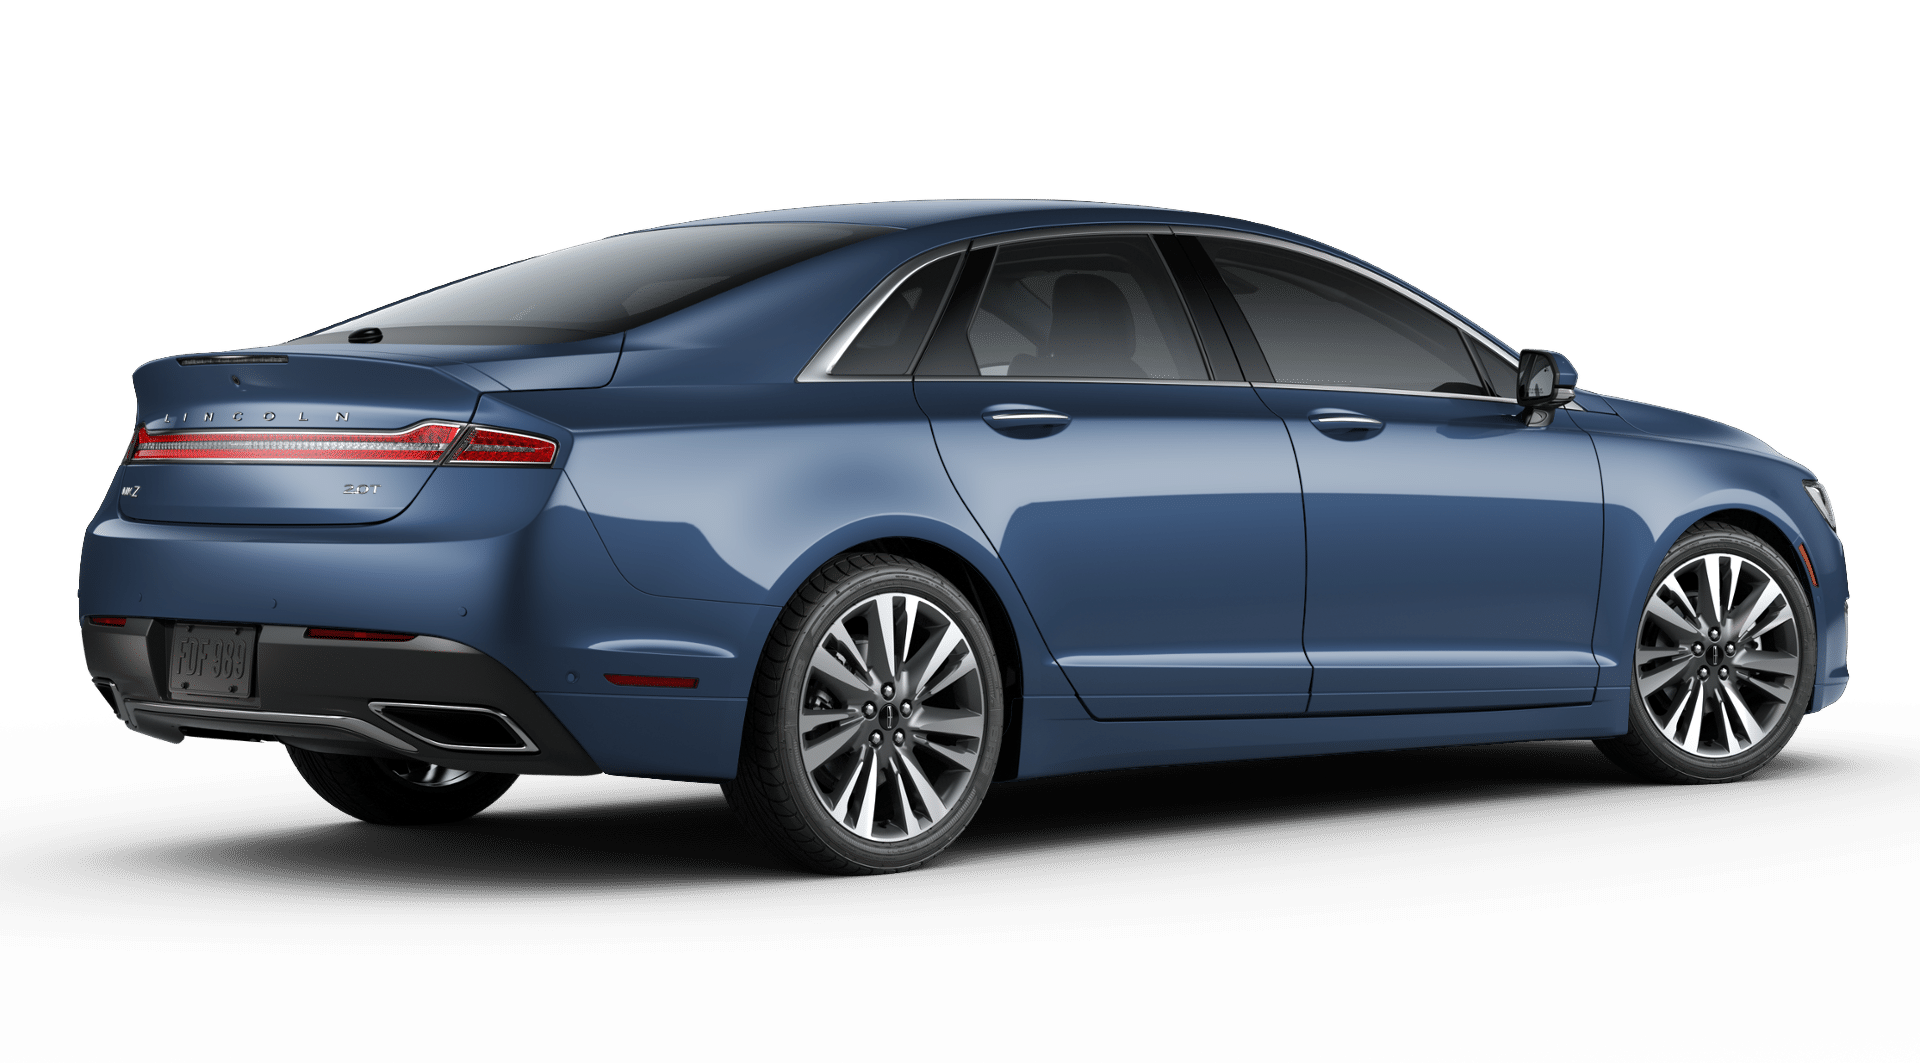 2019 Lincoln MKZ Reserve II Blue Diamond Exterior Side View.png